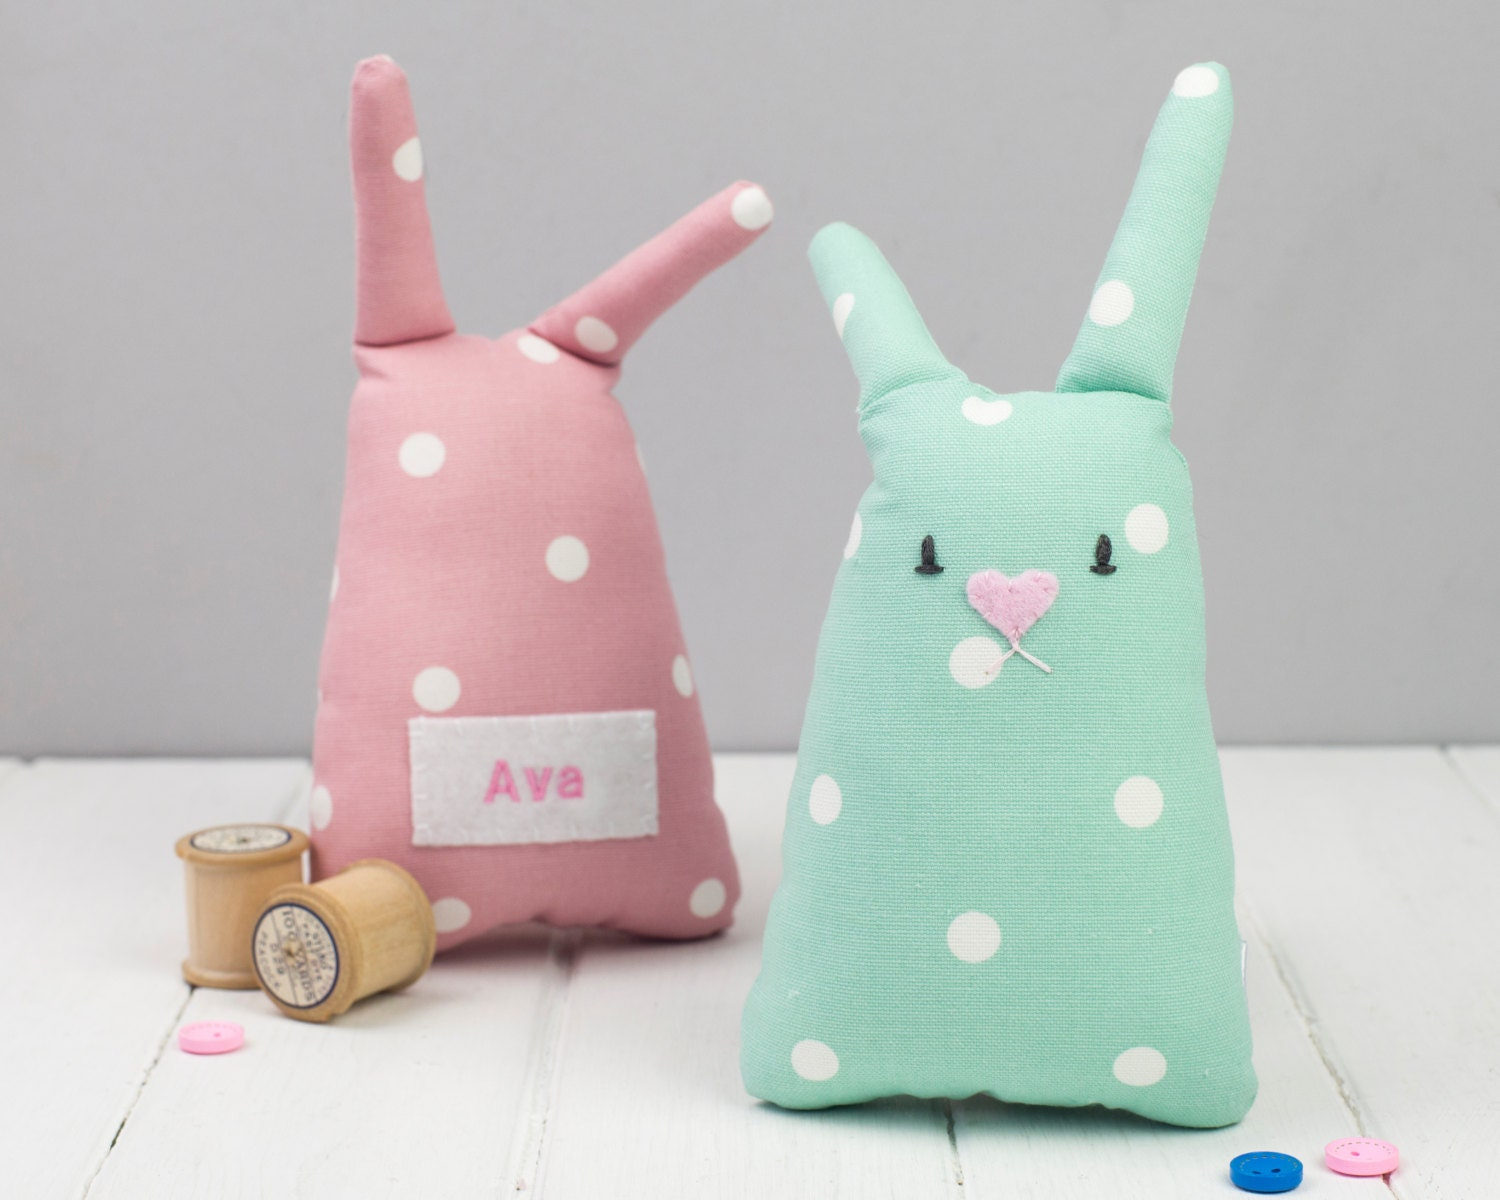 Baby Bunny Toy  Personalised Bunny Toy  Bunny Christening Gift  Bunny Toy for Newborn Baby